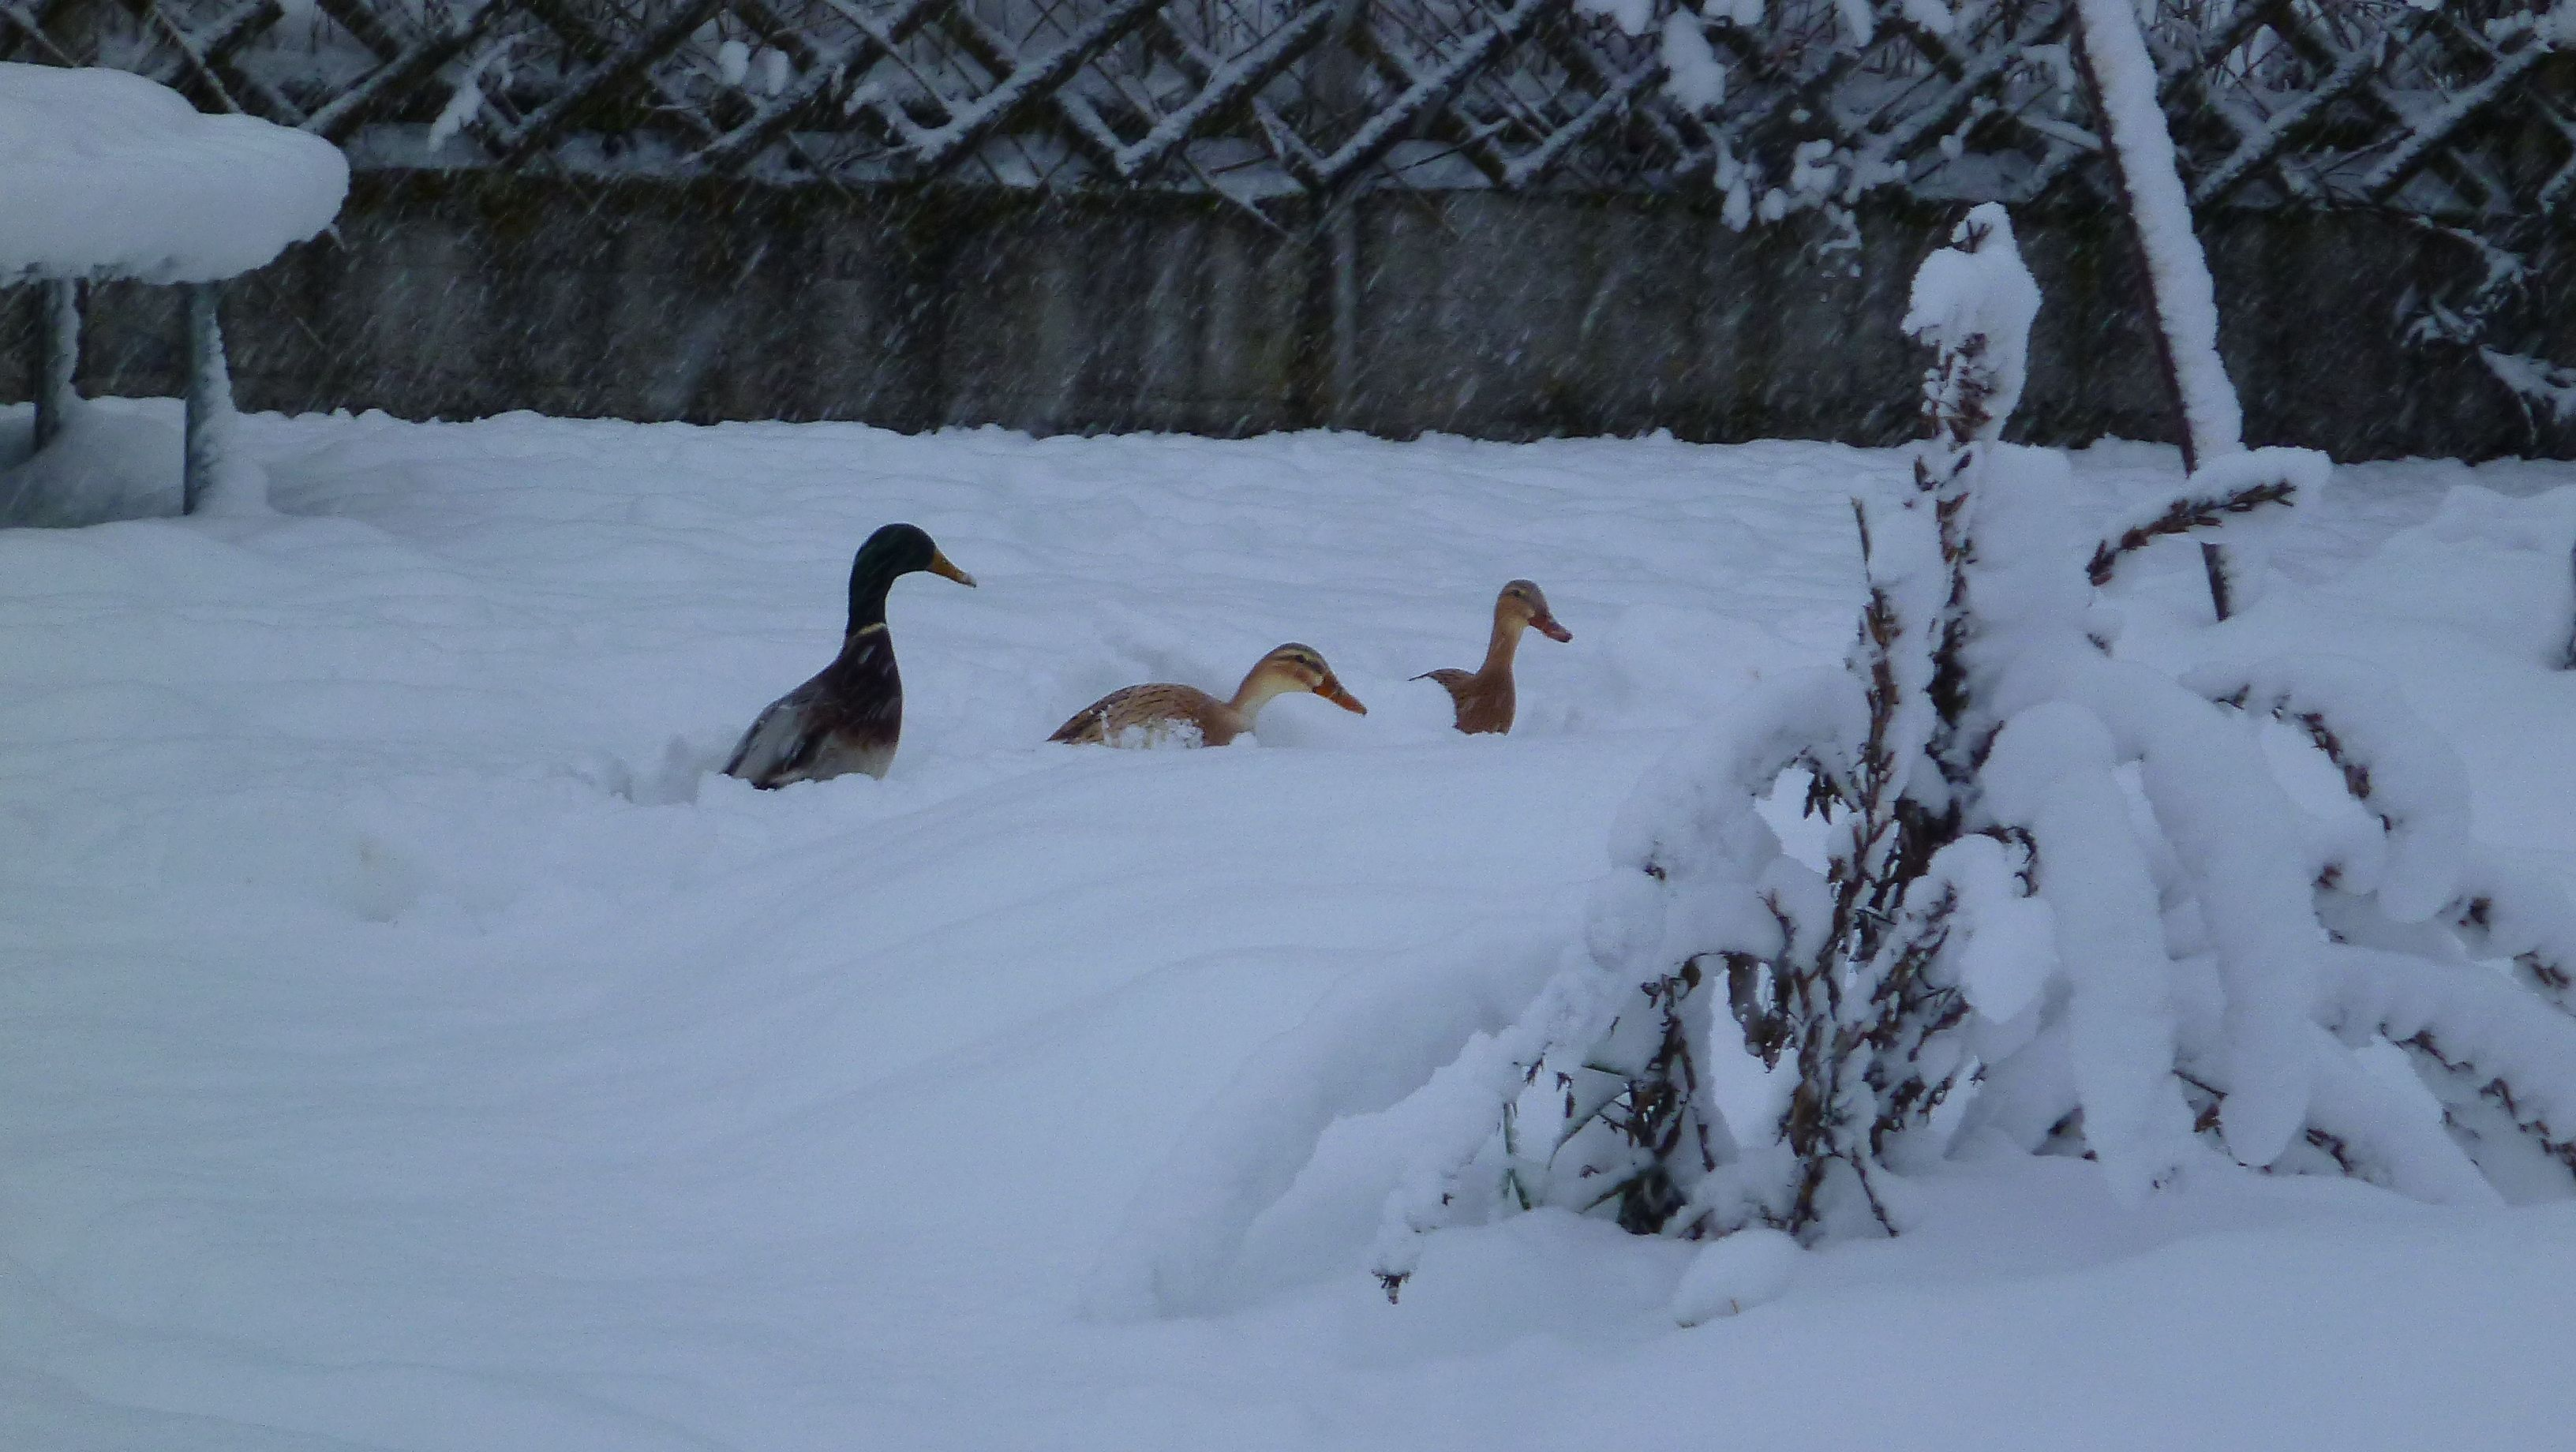 Mein Enten im Winter